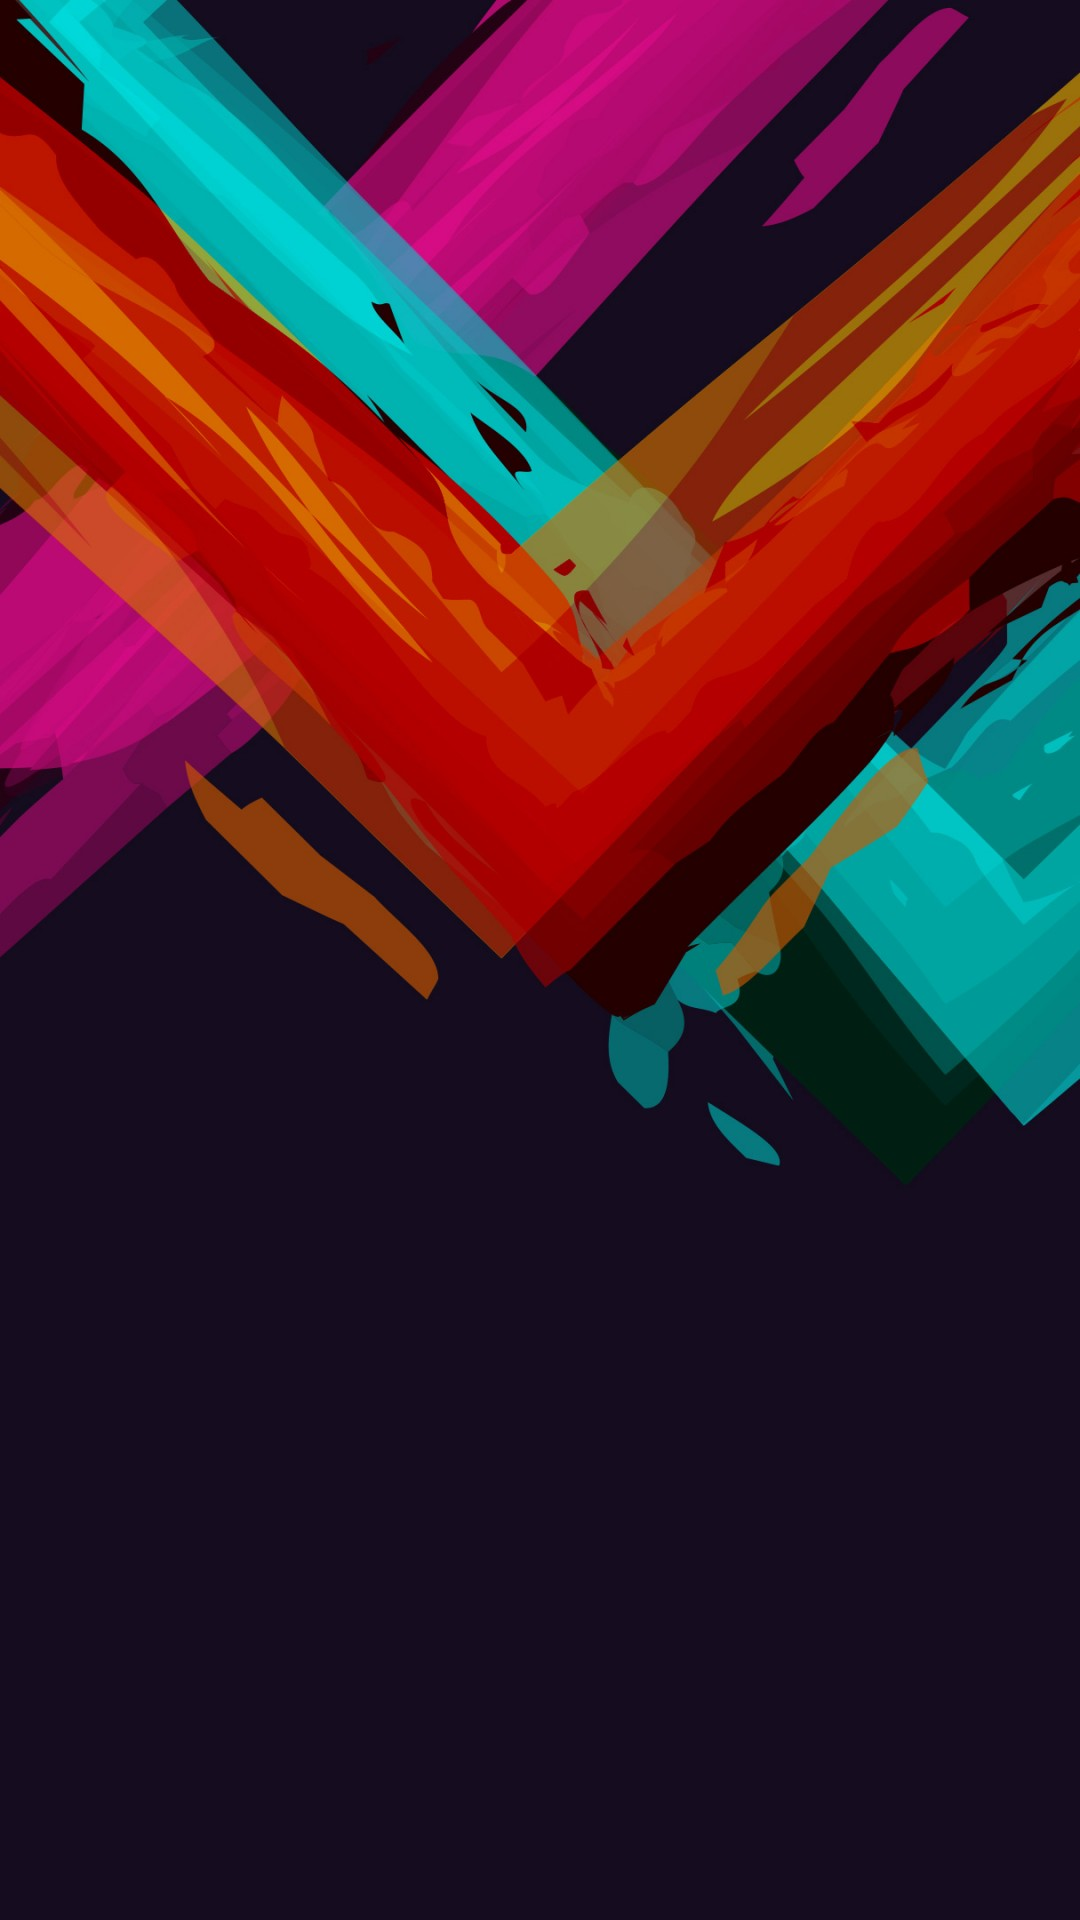 Wallpaper Artistic Colors 4k 5k Abstract 18393